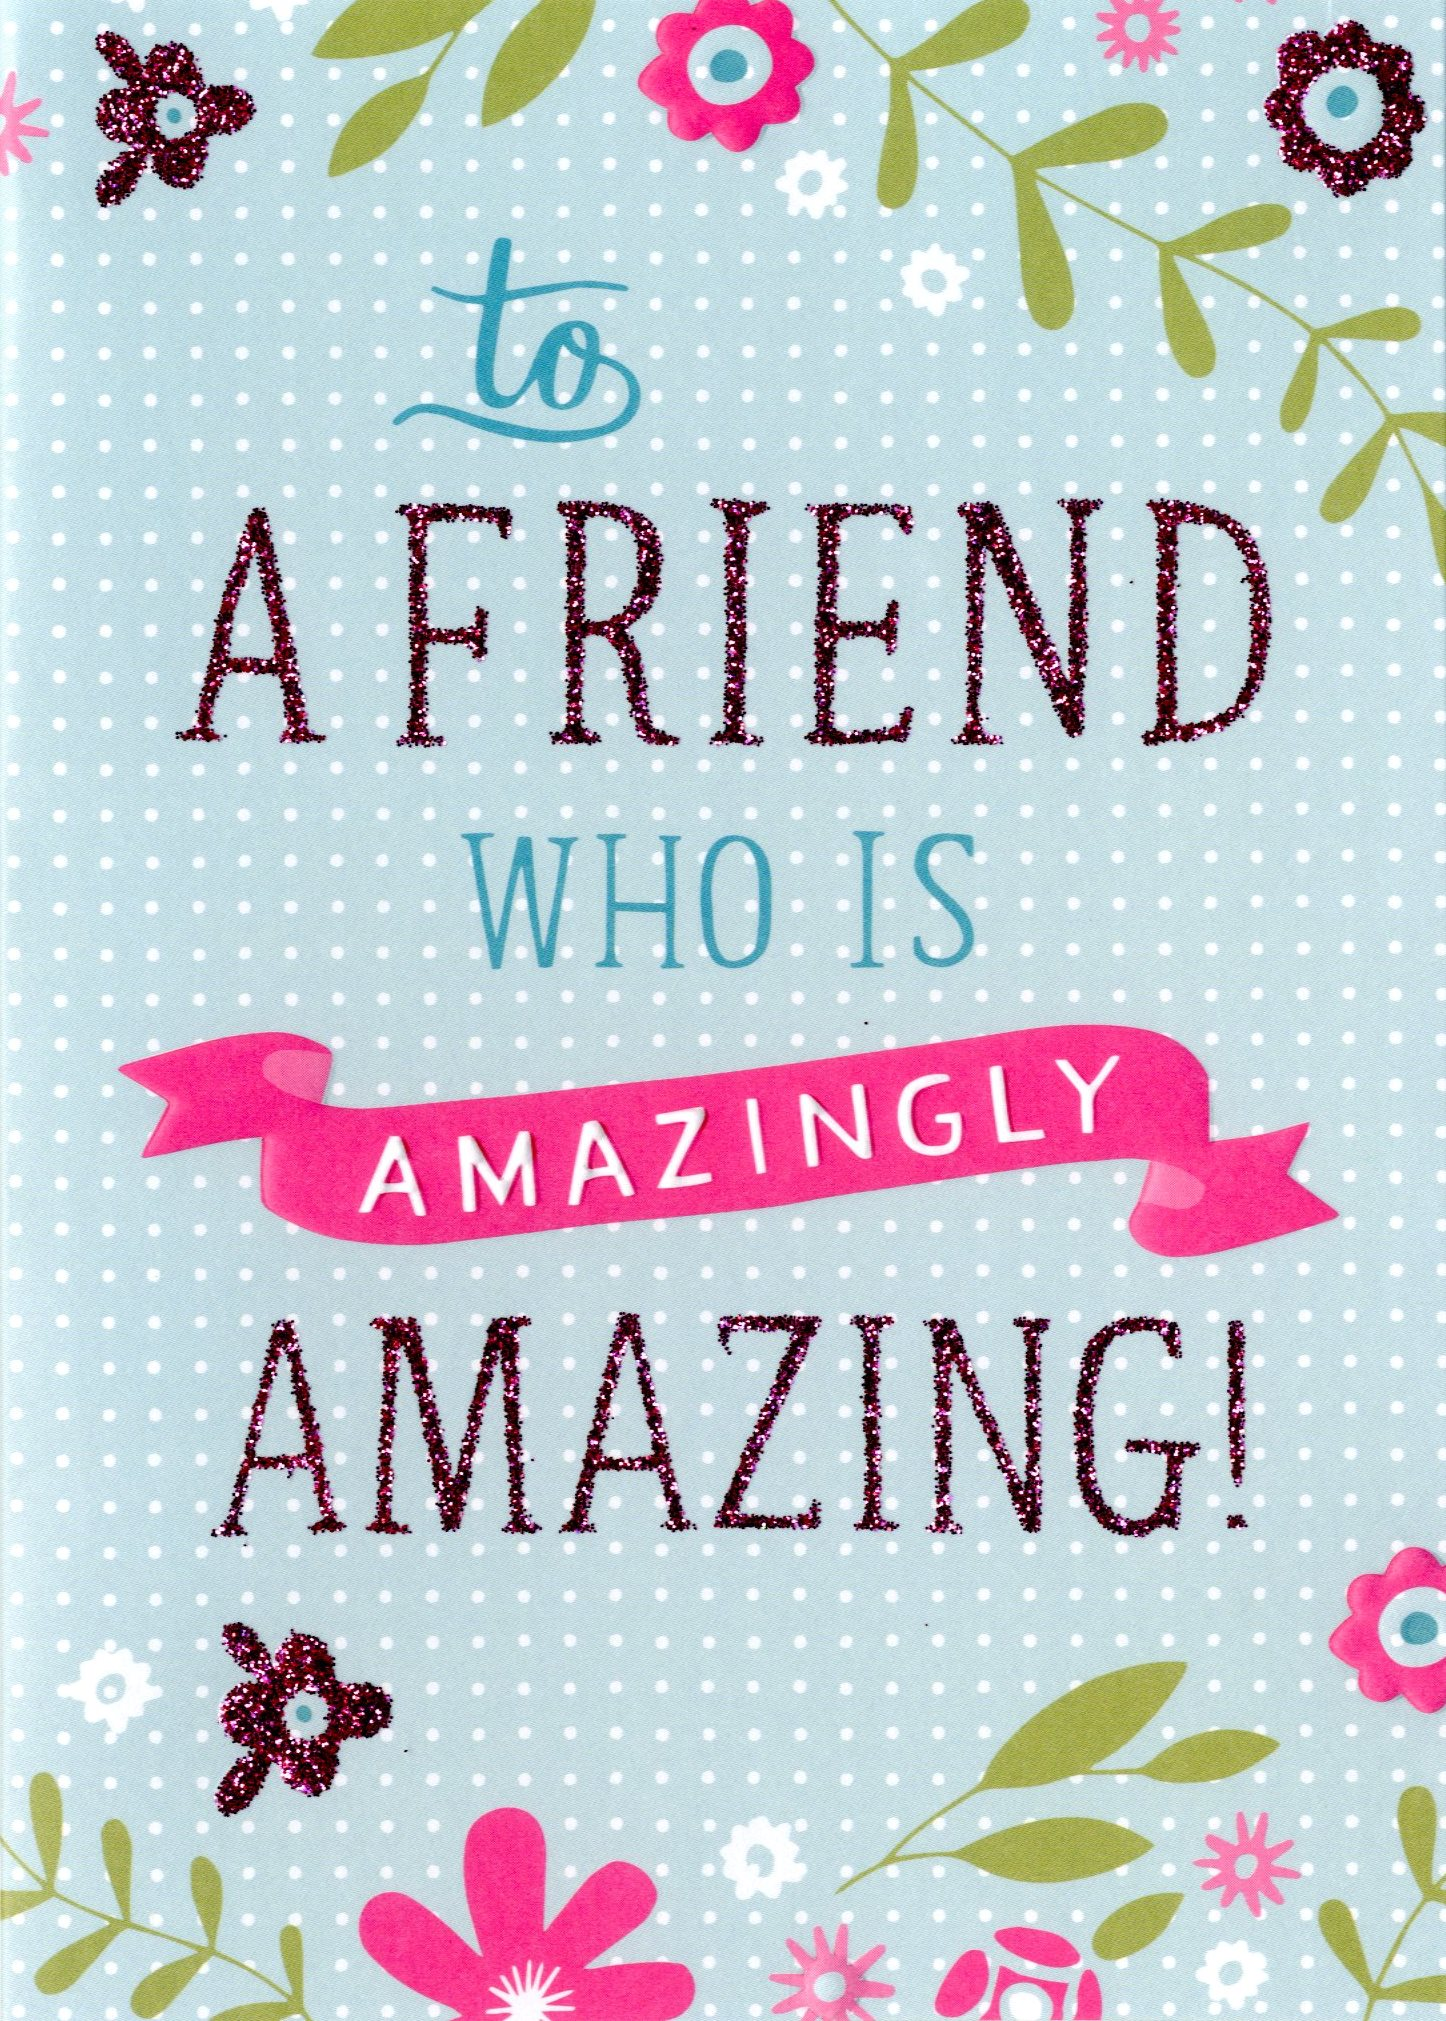 Amazingly amazing friend birthday card cards love kates amazingly amazing friend birthday card bookmarktalkfo